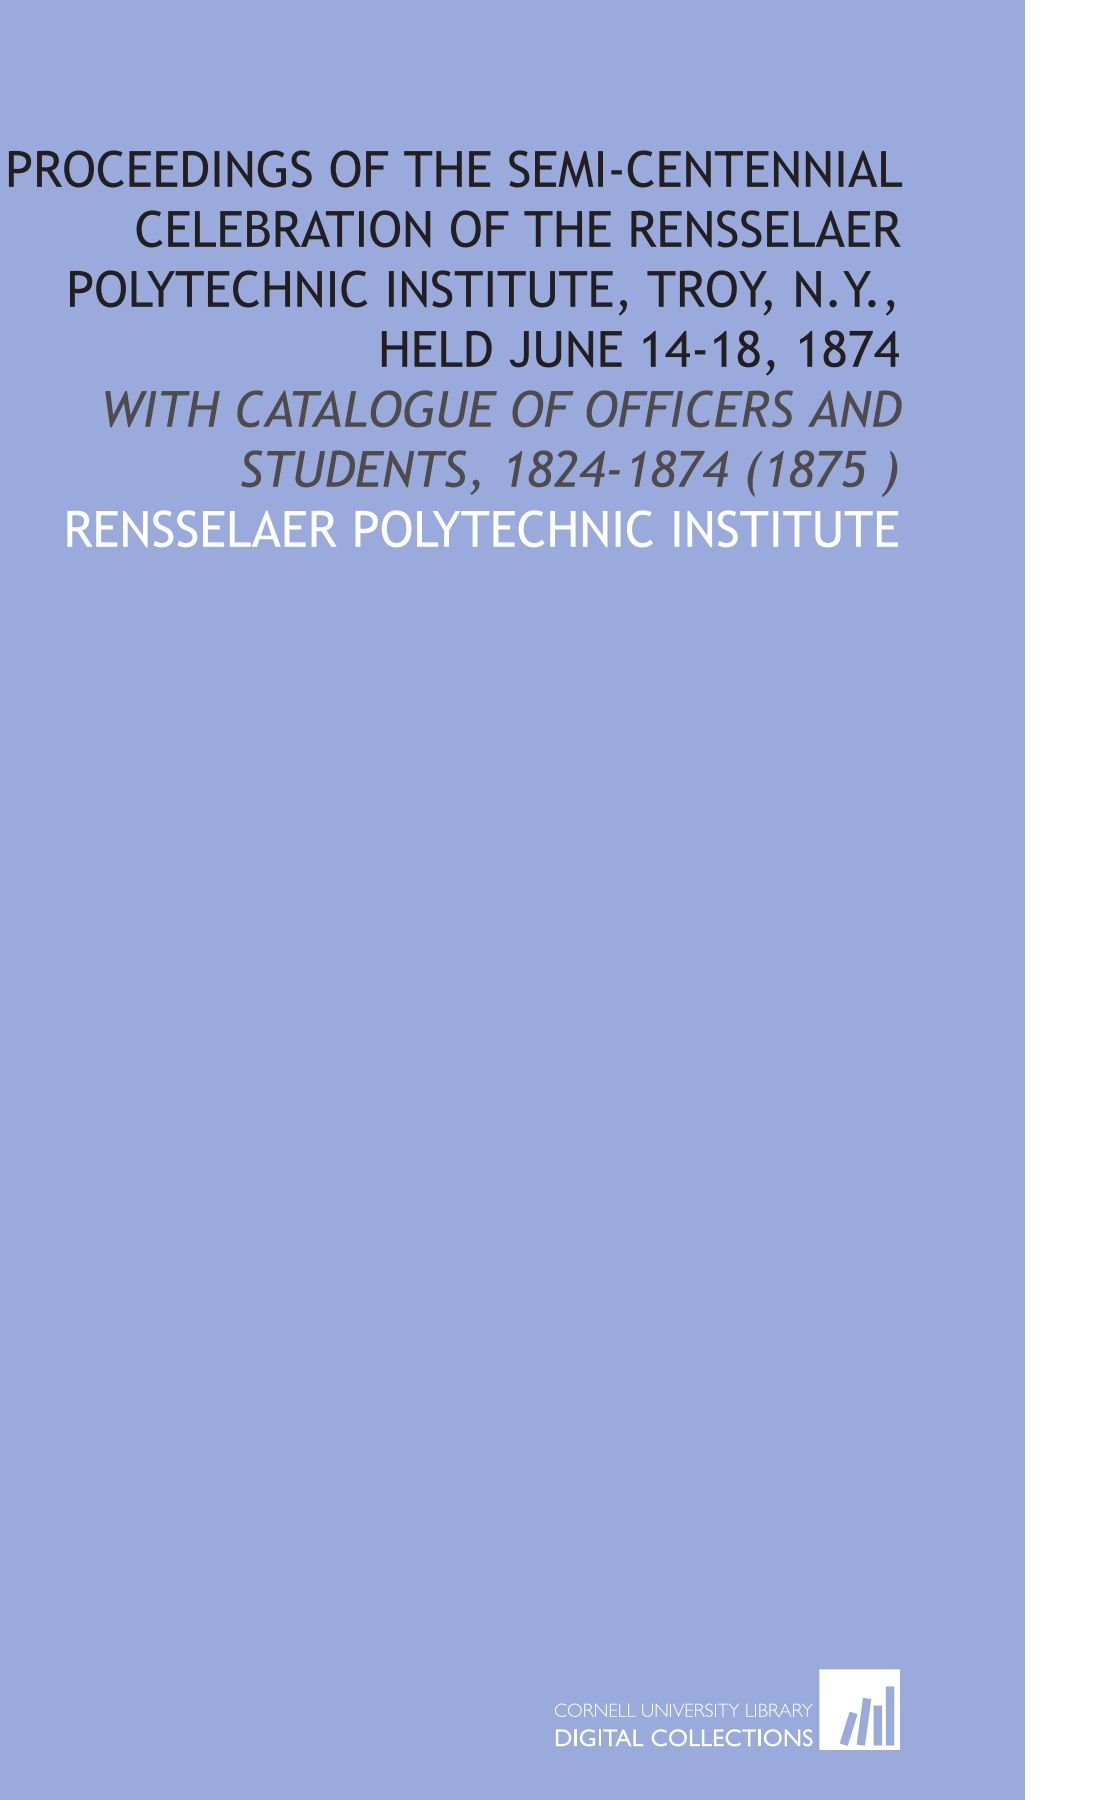 Download Proceedings of the Semi-Centennial Celebration of the Rensselaer Polytechnic Institute, Troy, N.Y., Held June 14-18, 1874: With Catalogue of Officers and Students, 1824-1874 (1875 ) ebook